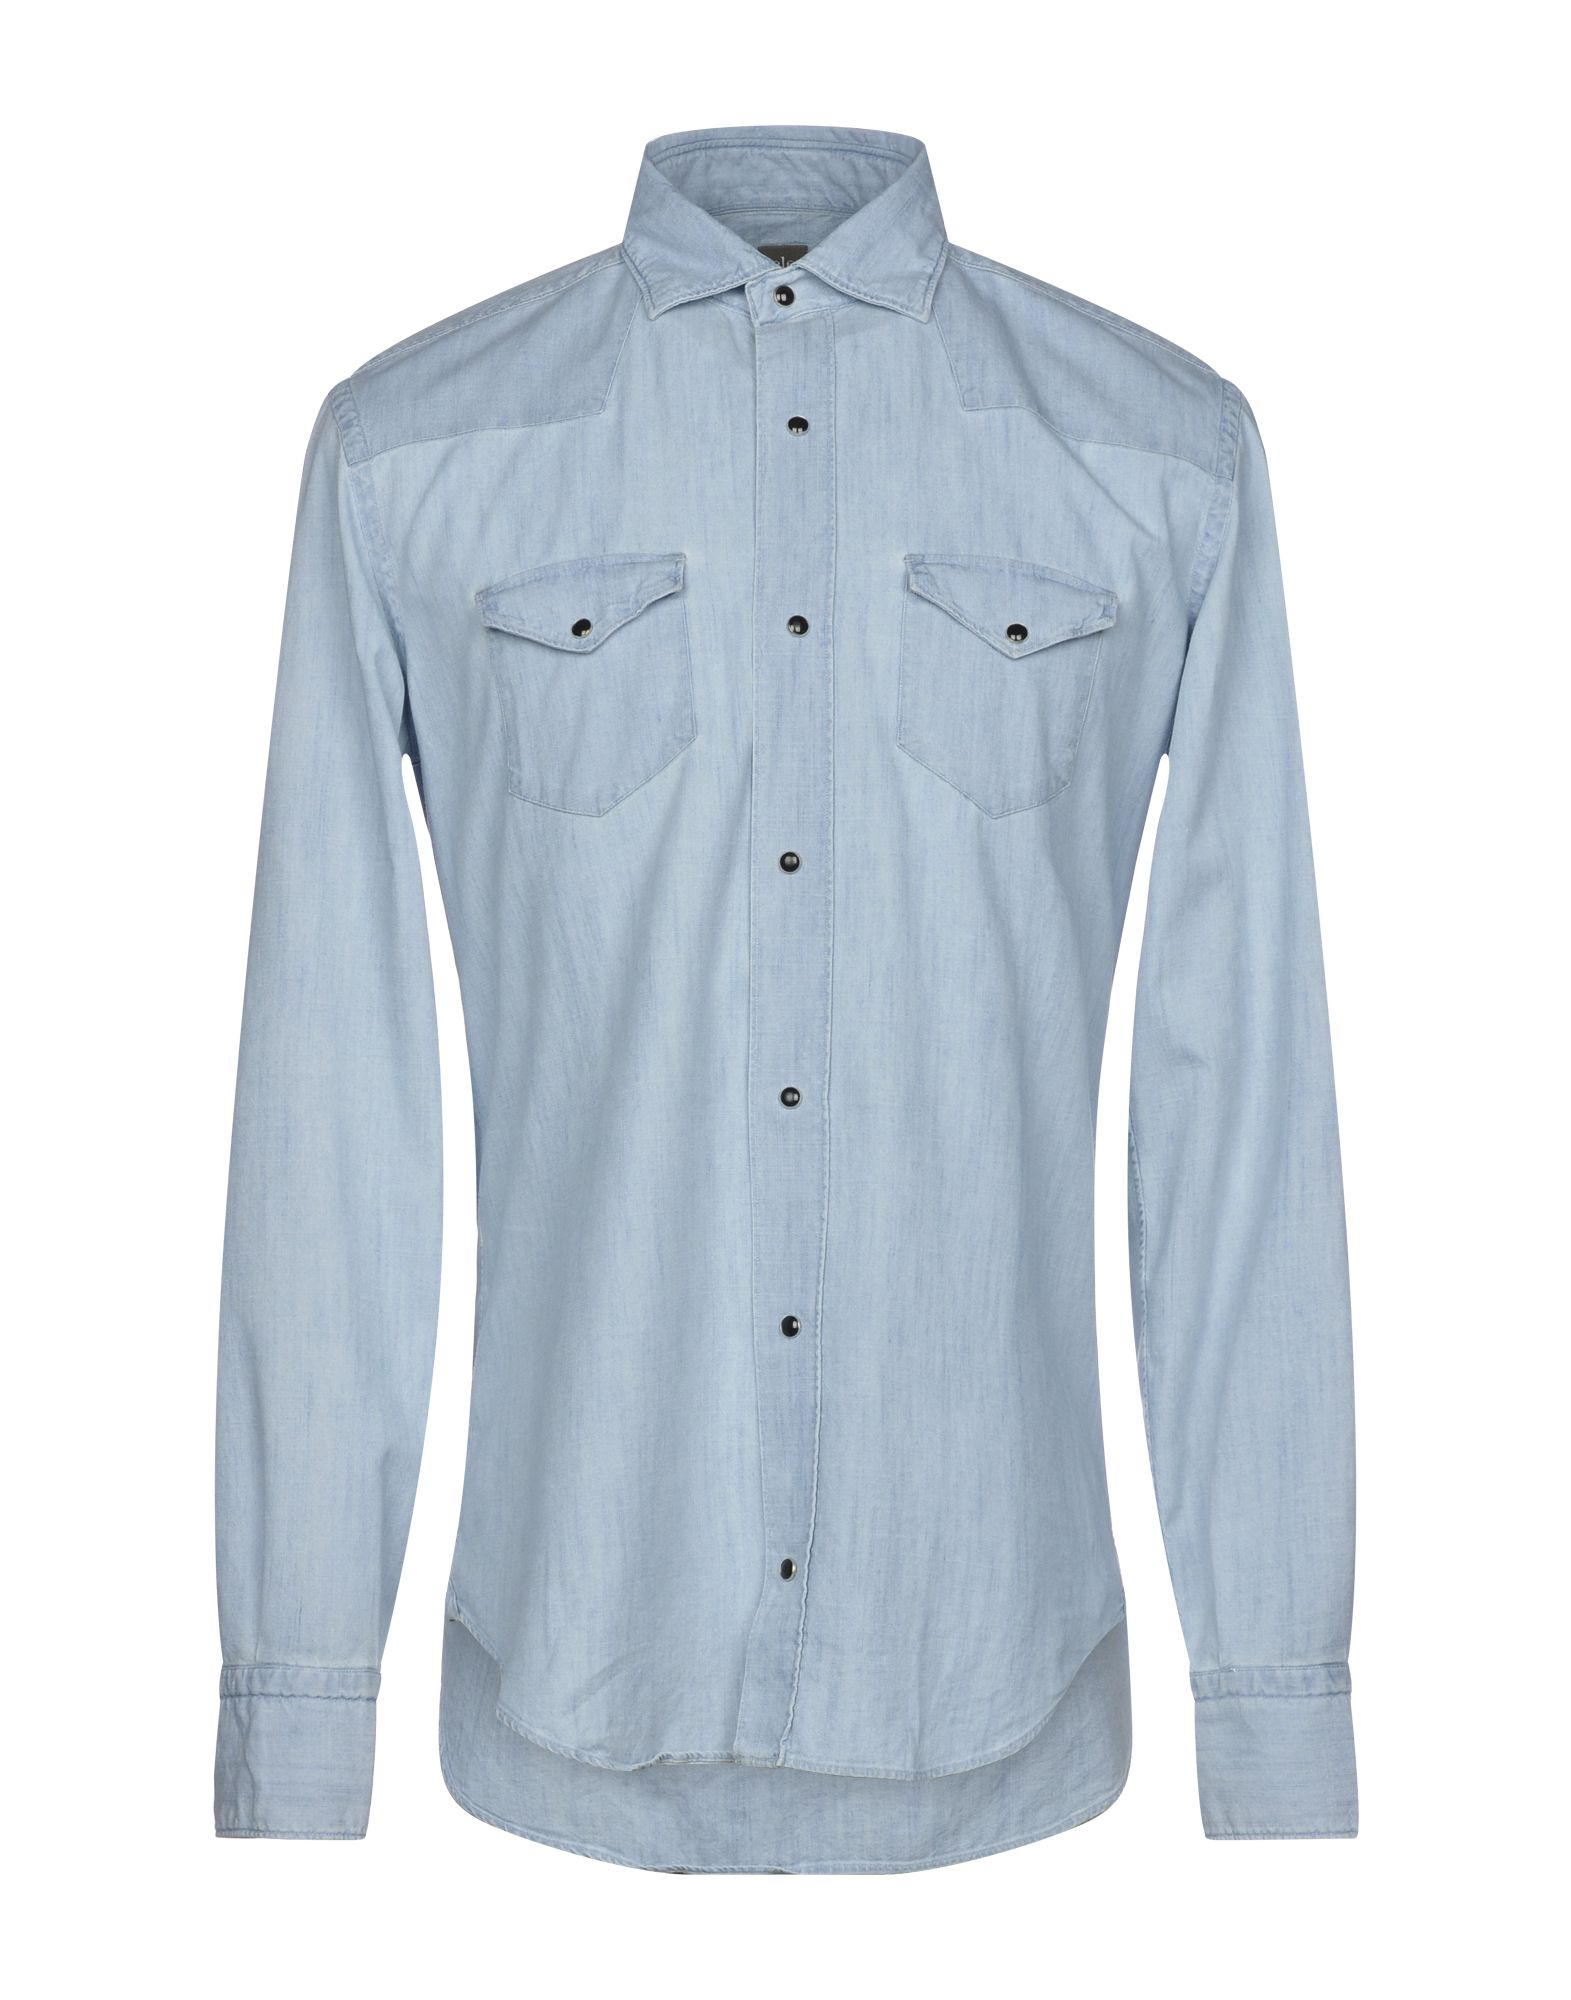 Cheap Sale Perfect DENIM - Denim shirts S.S.N.Y. Online Sale Online Outlet Largest Supplier Free Shipping Latest Collections Cheap Amazing Price AKXm967